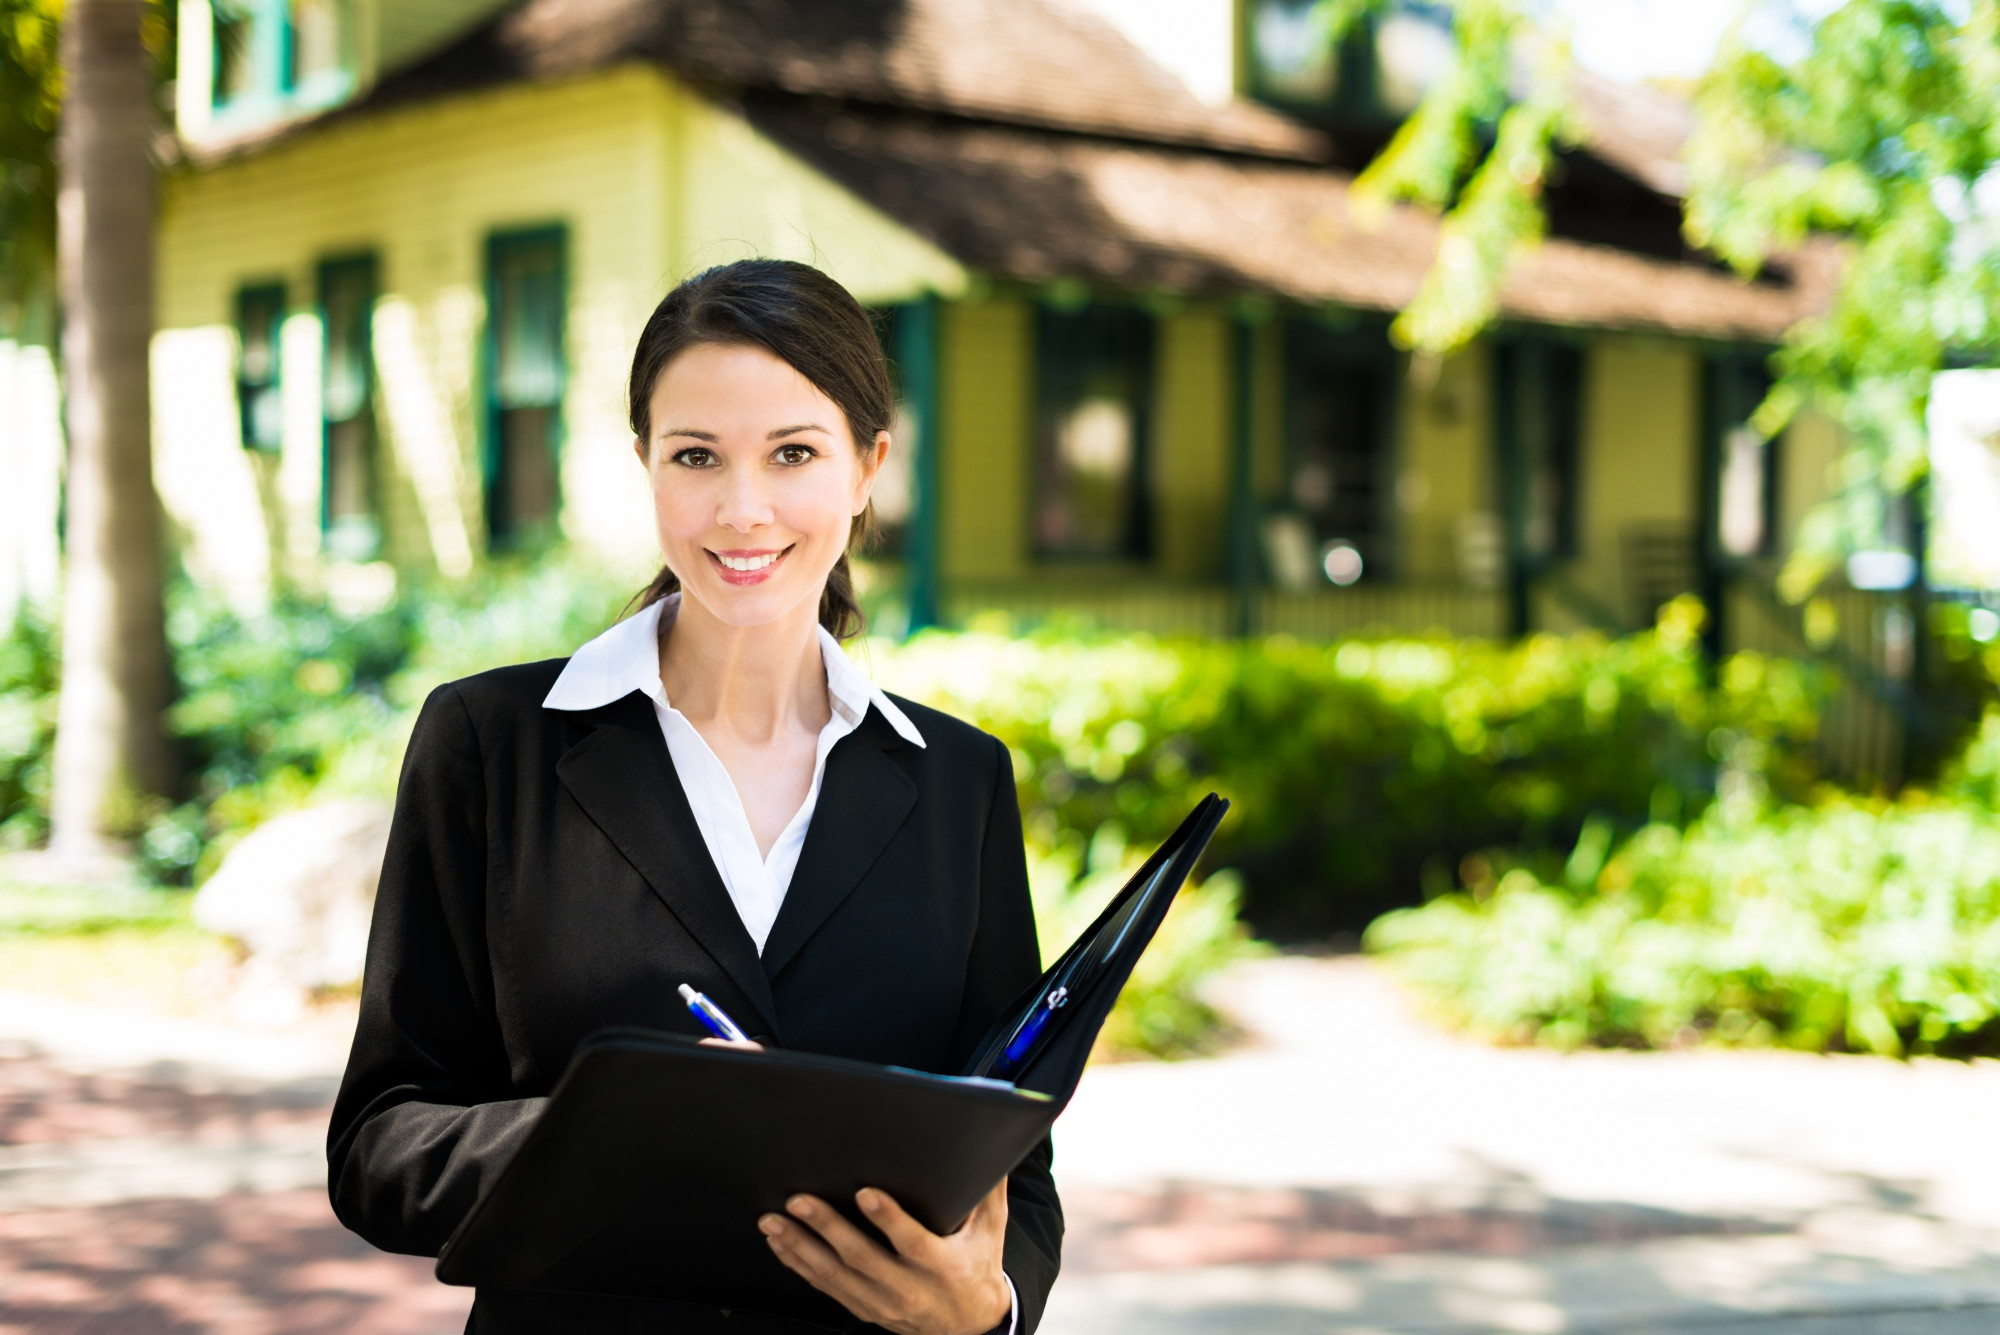 Top 7 Questions to Ask Your Real Estate Agent Before Selling Your Home